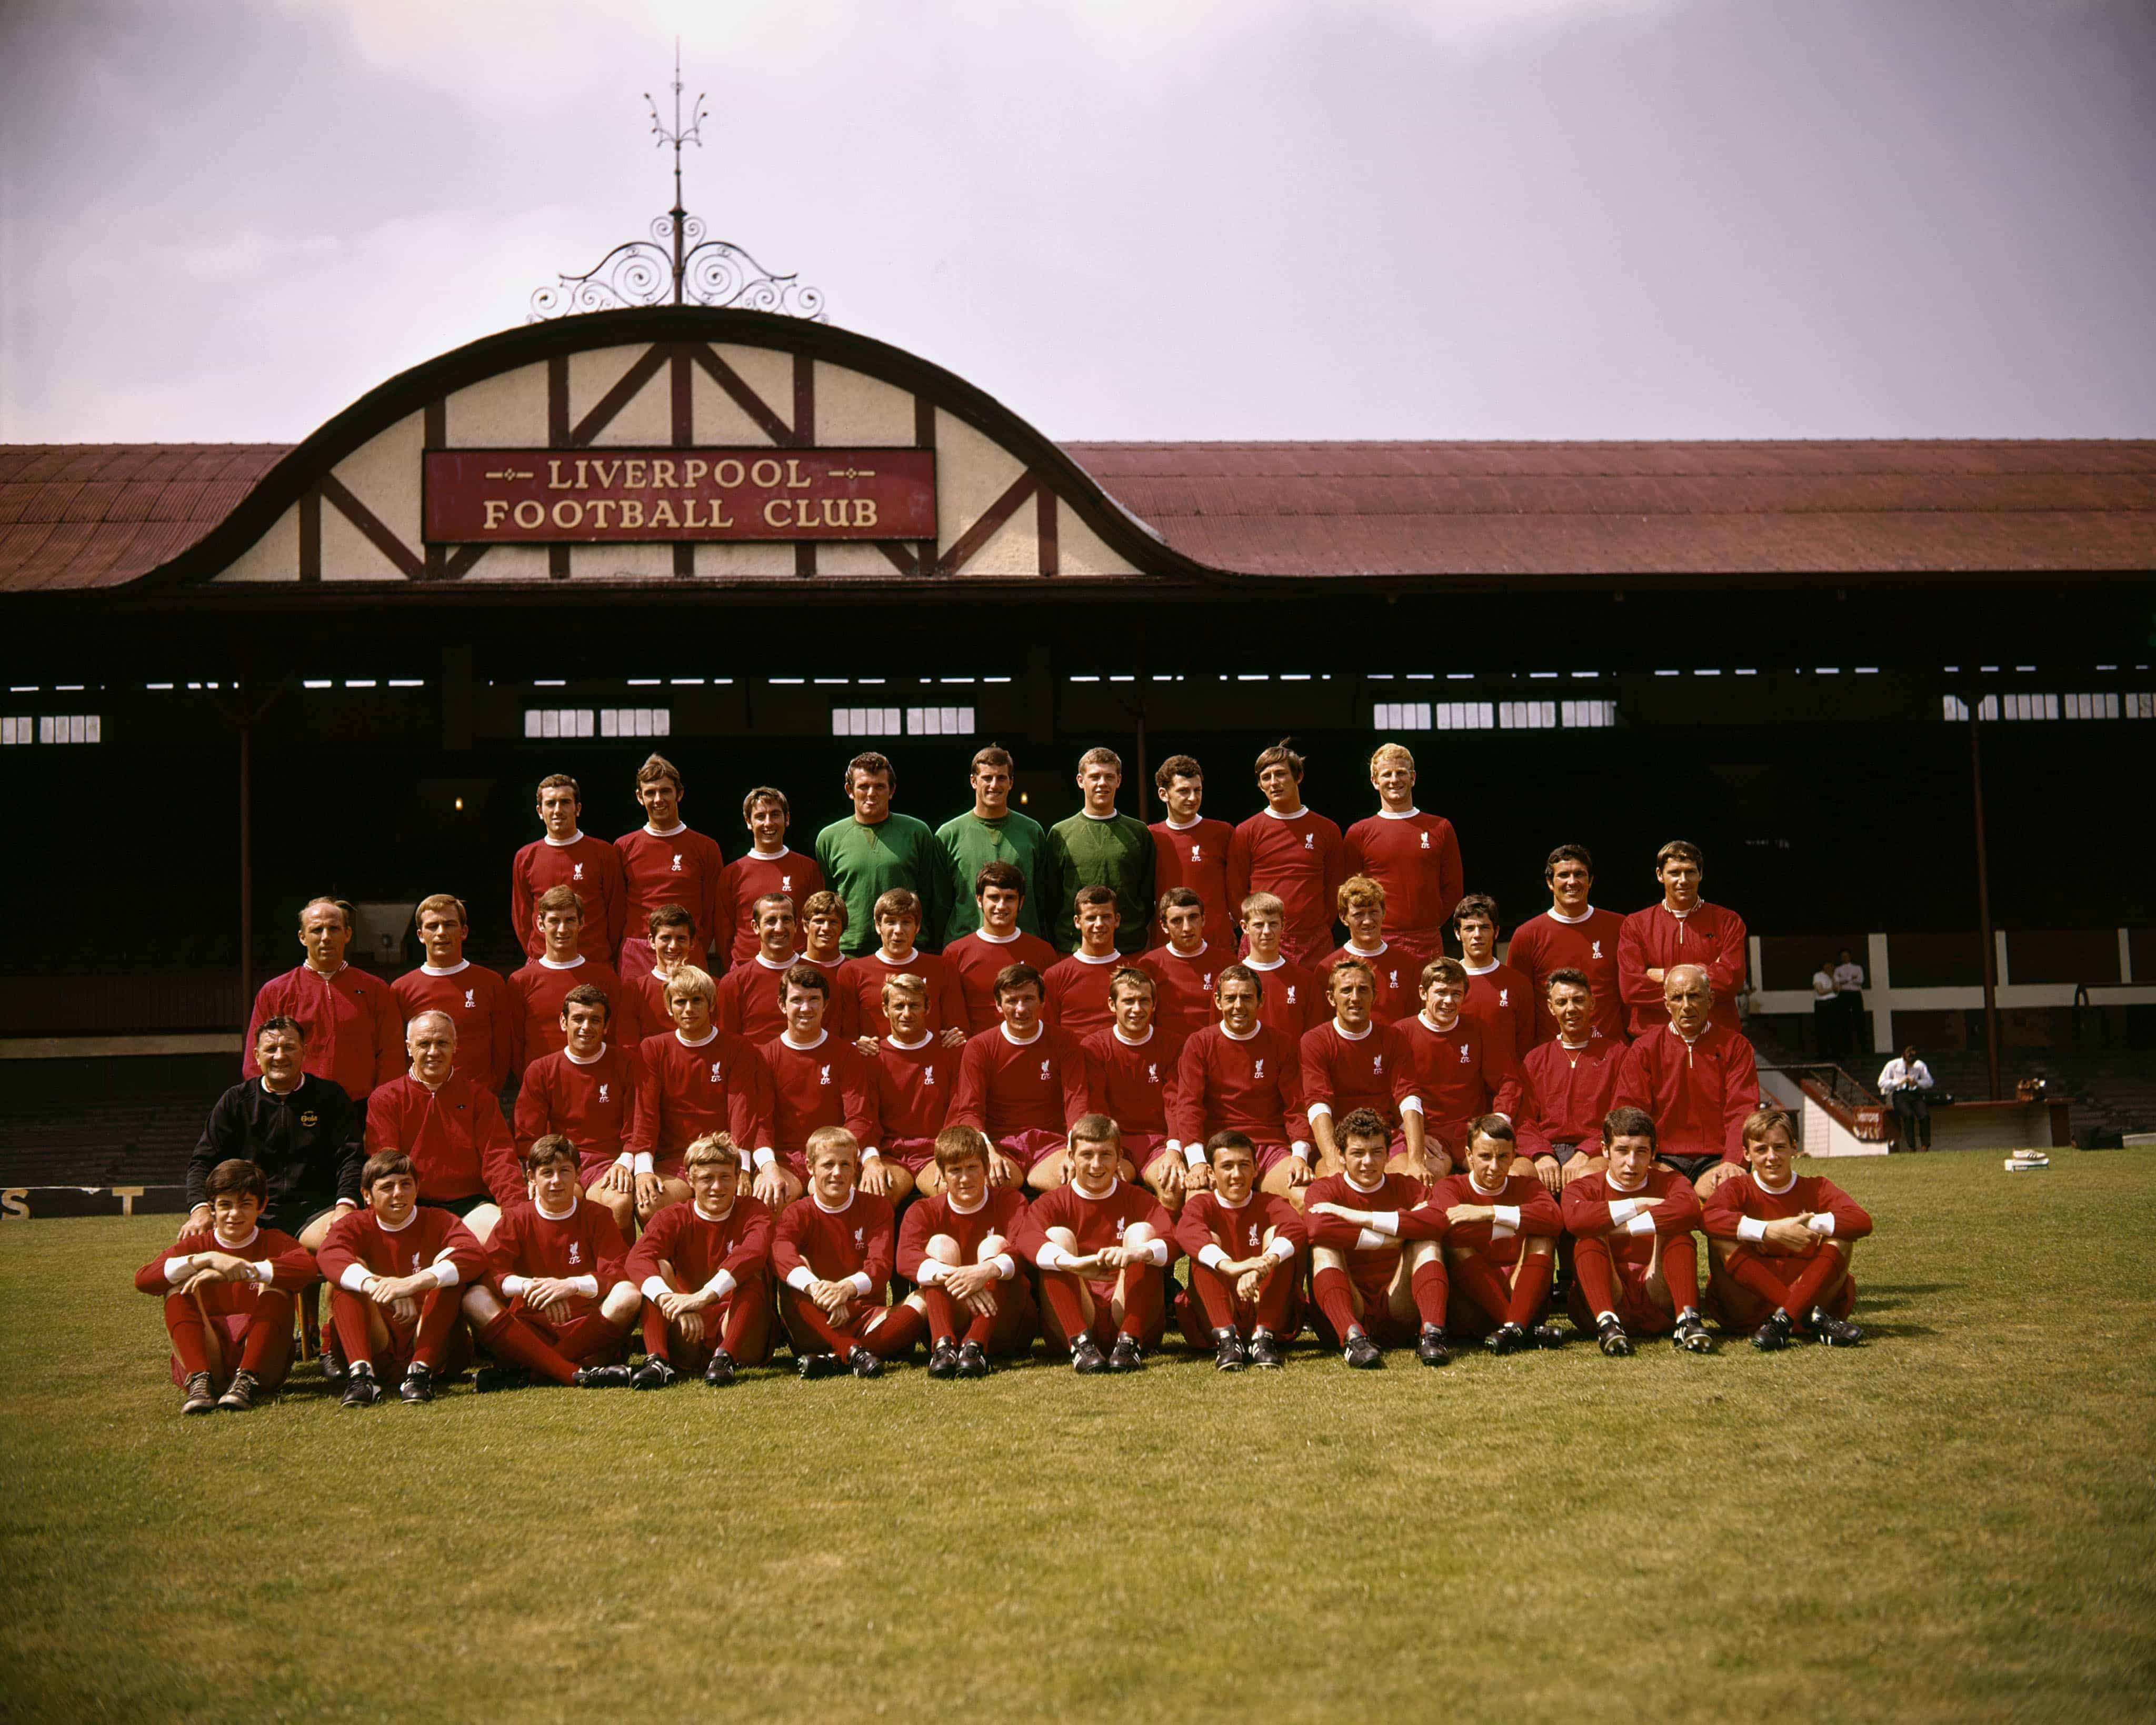 Liverpool squad 1969-70: (back row, l-r) Geoff Strong, Gerry Byrne, Chris Lawler, Tommy Lawrence, Ray Clemence, Larry Lloyd, Ian Ross, Alec Lindsay; (front row, l-r) Ian Callaghan, Alun Evans, Roger Hunt, Tommy Smith, Ron Yeats, Emlyn Hughes, Ian St John, Peter Thompson, Bobby Graham (Picture by PA Photos PA Archive/PA Images)